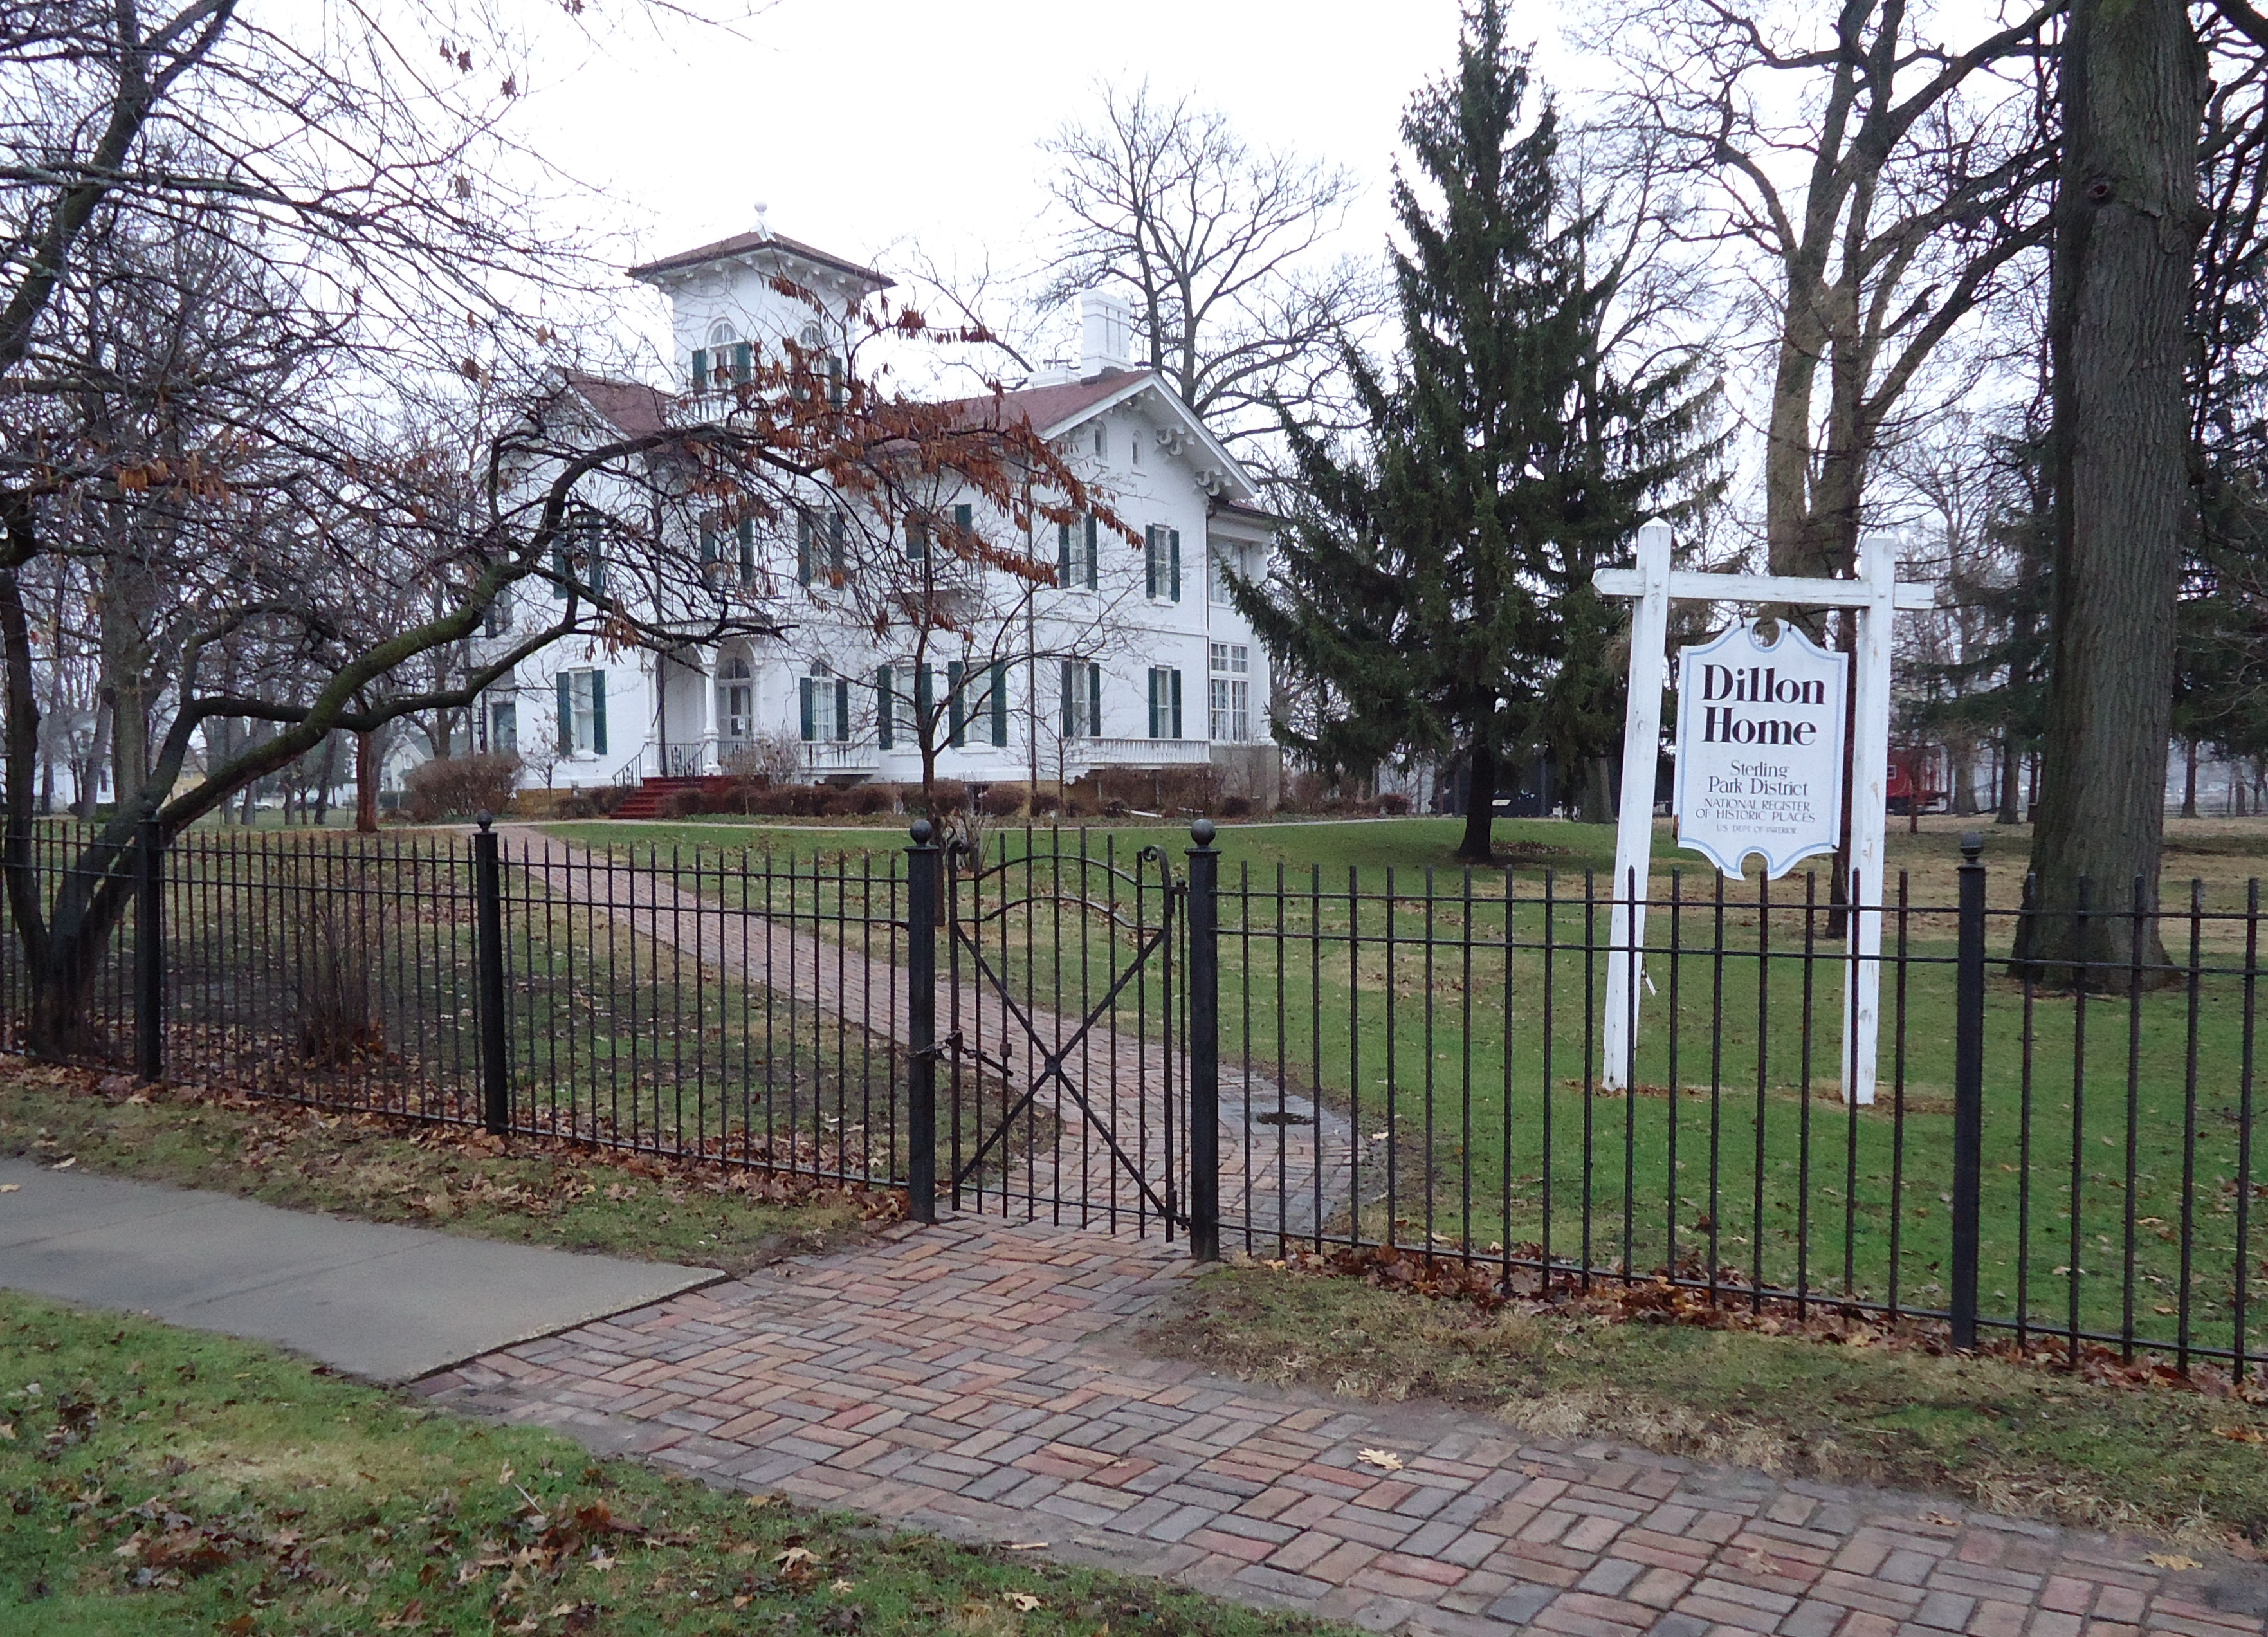 <h1>Dillon Home Museum</h1>